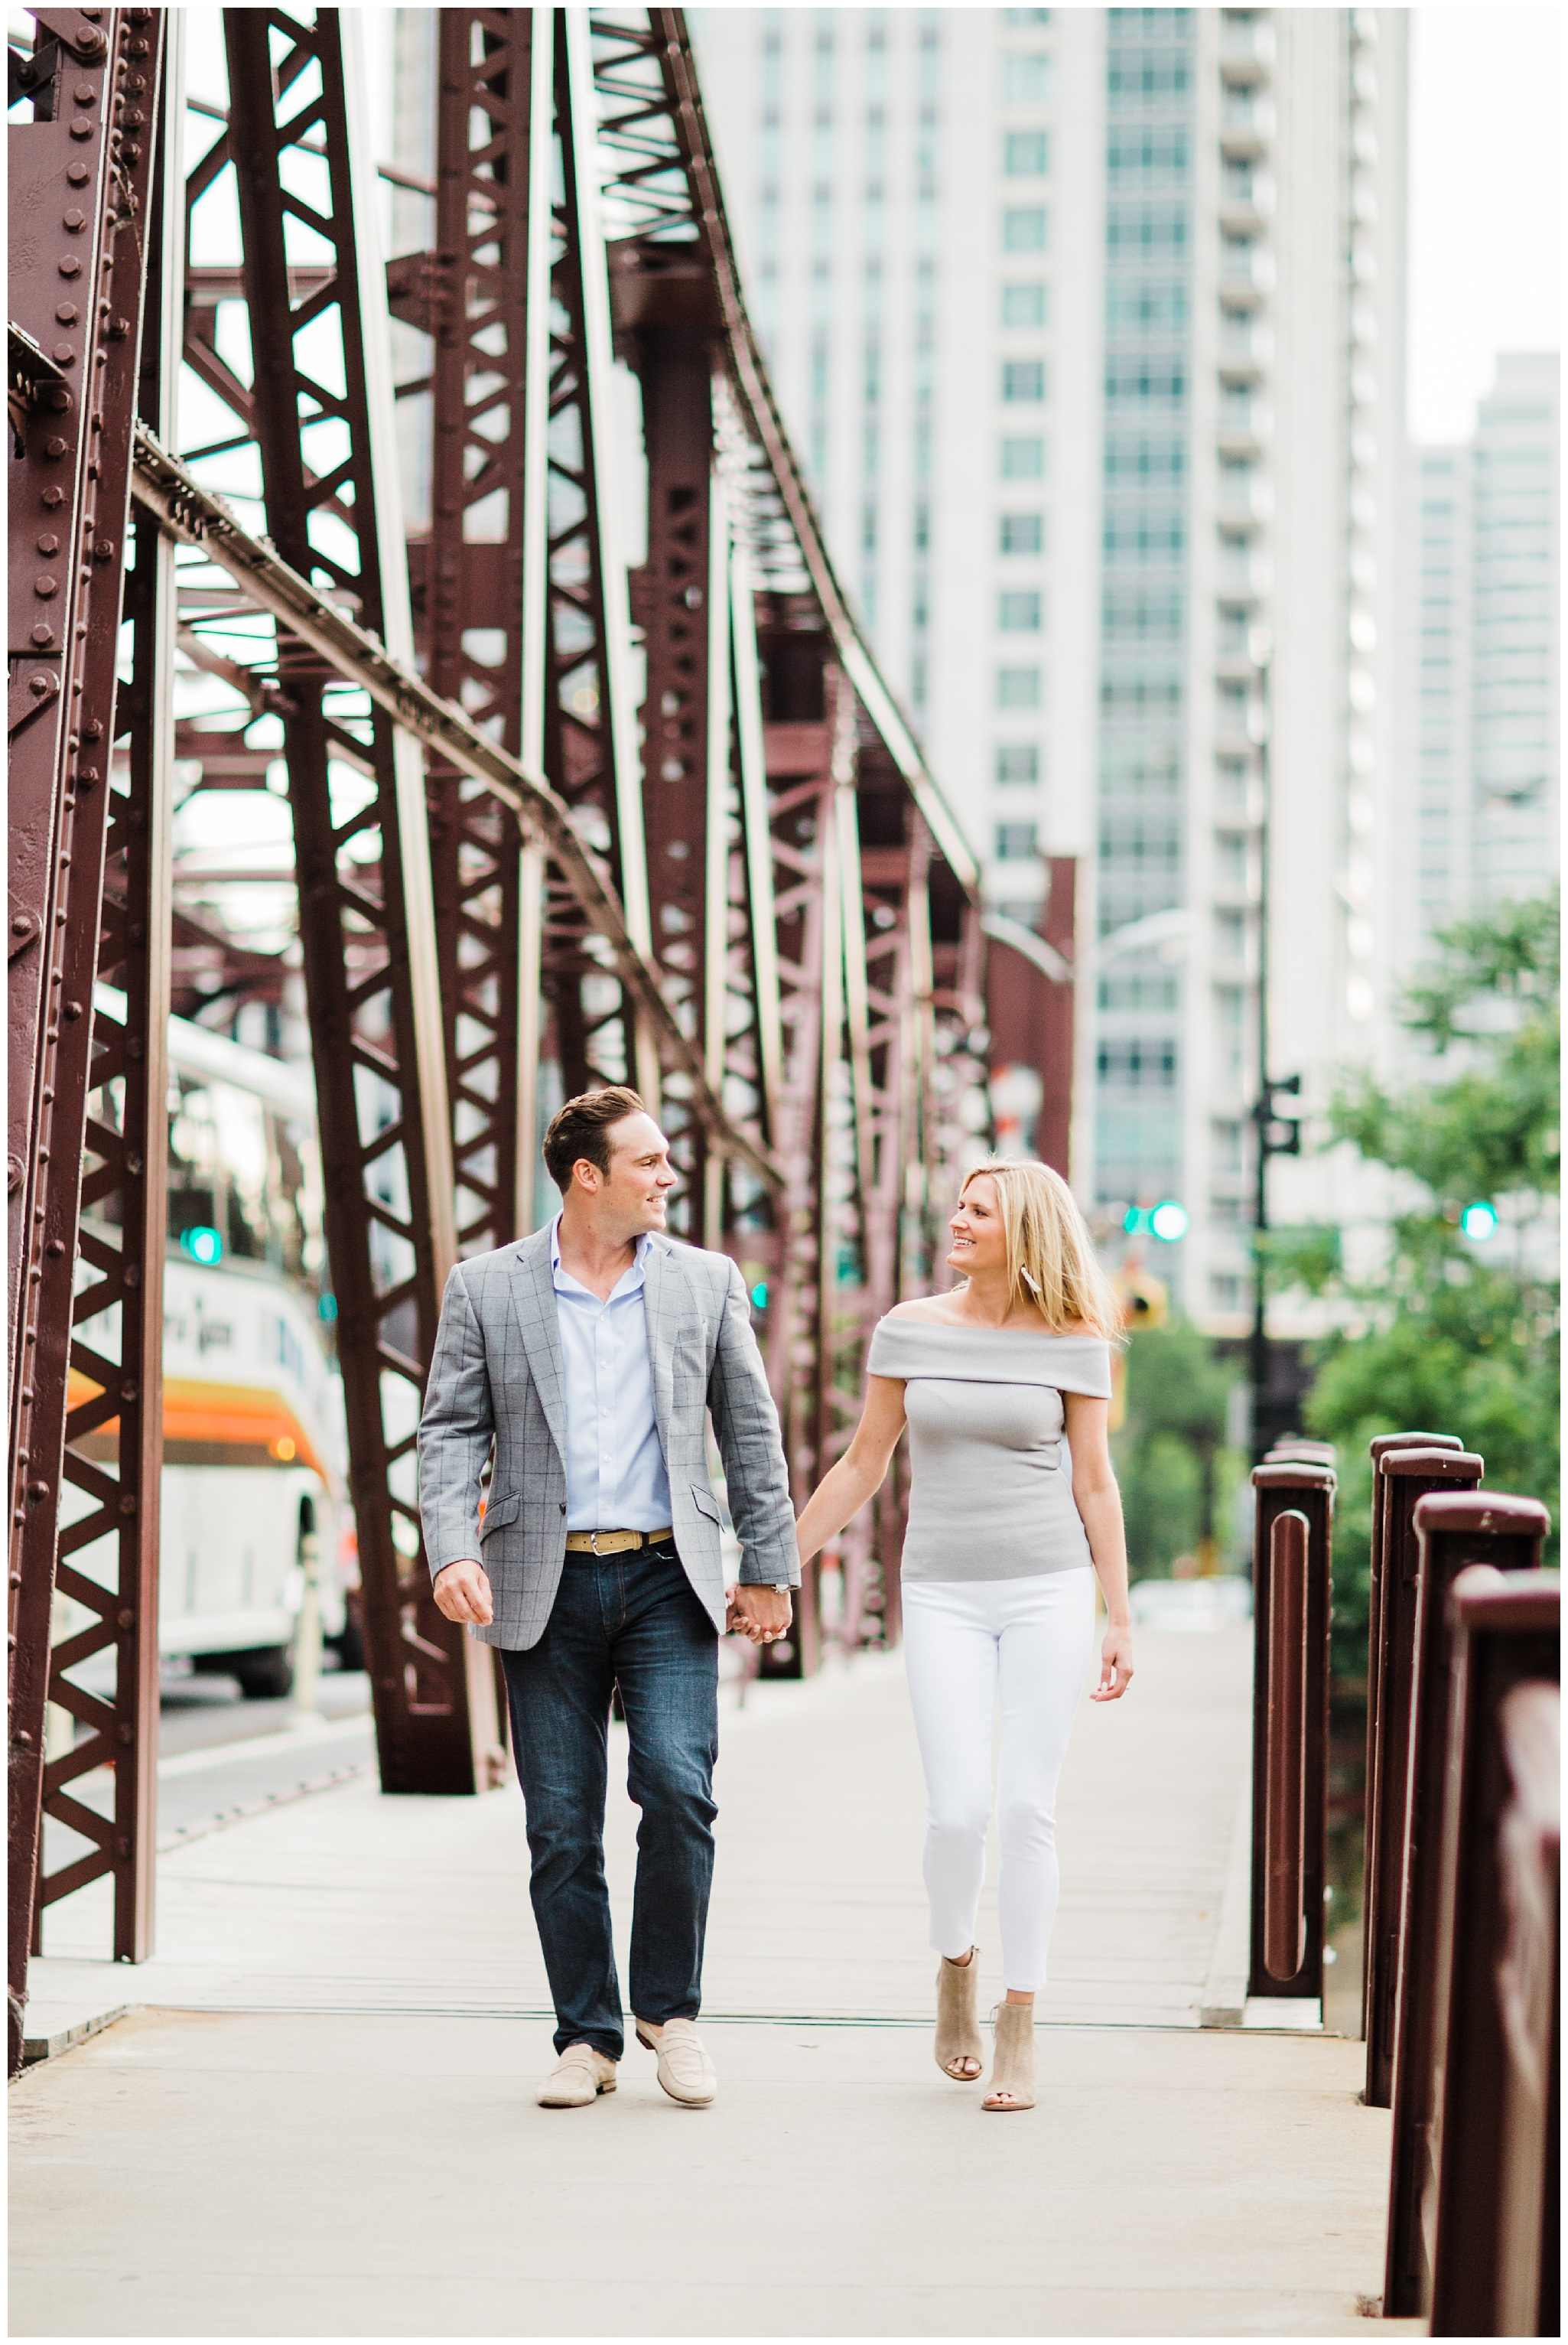 M&T_ChicagoEngagementSession__0174.jpg